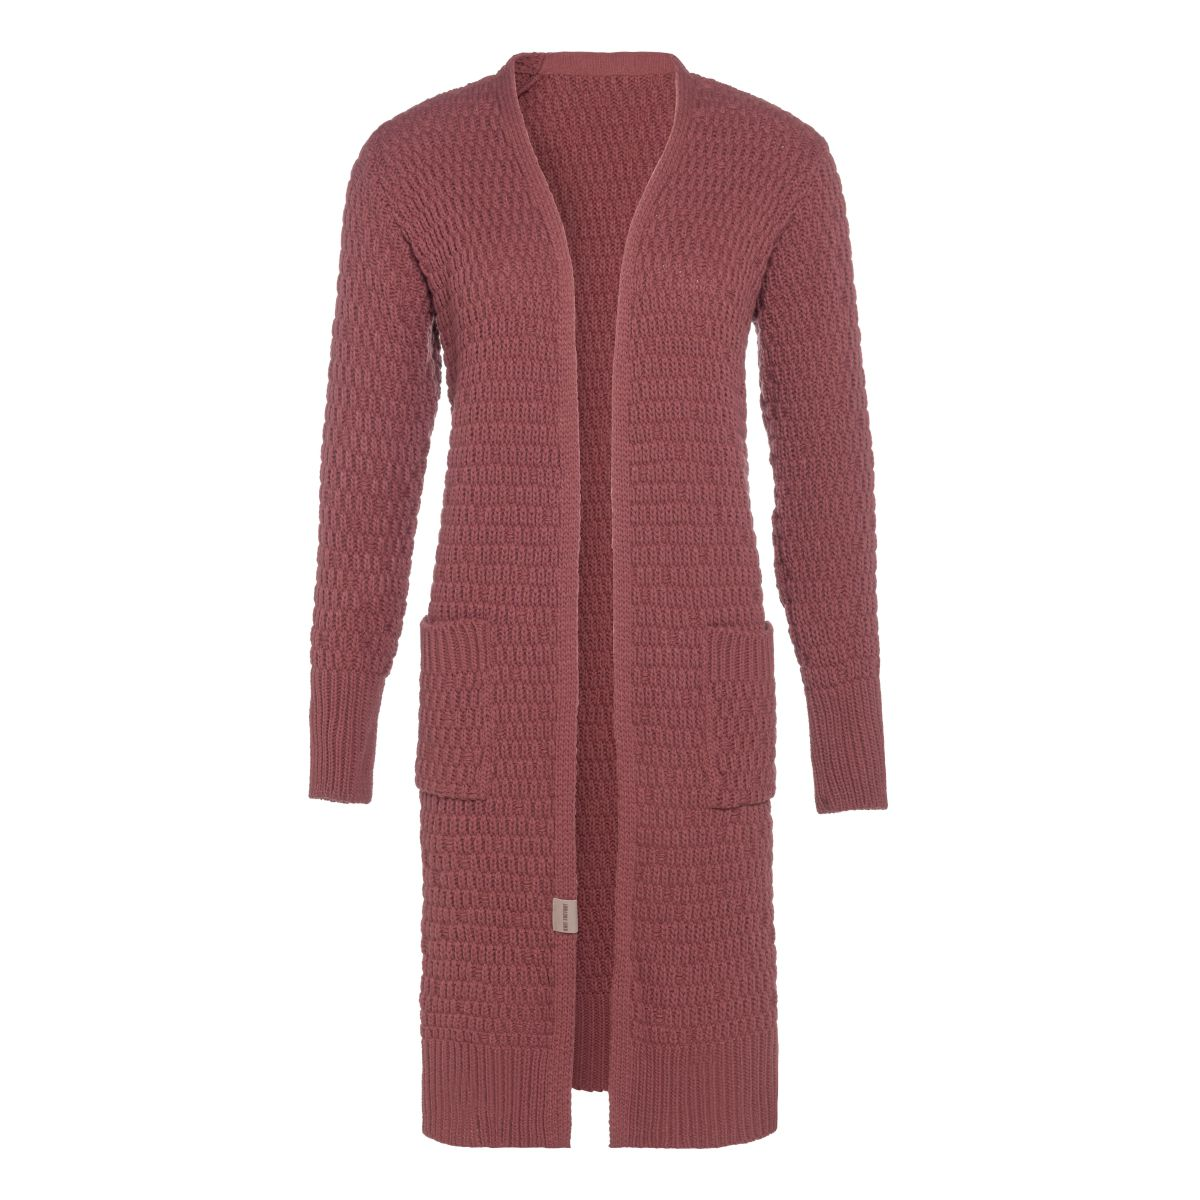 jaida long knitted cardigan stone red 3638 with side pockets